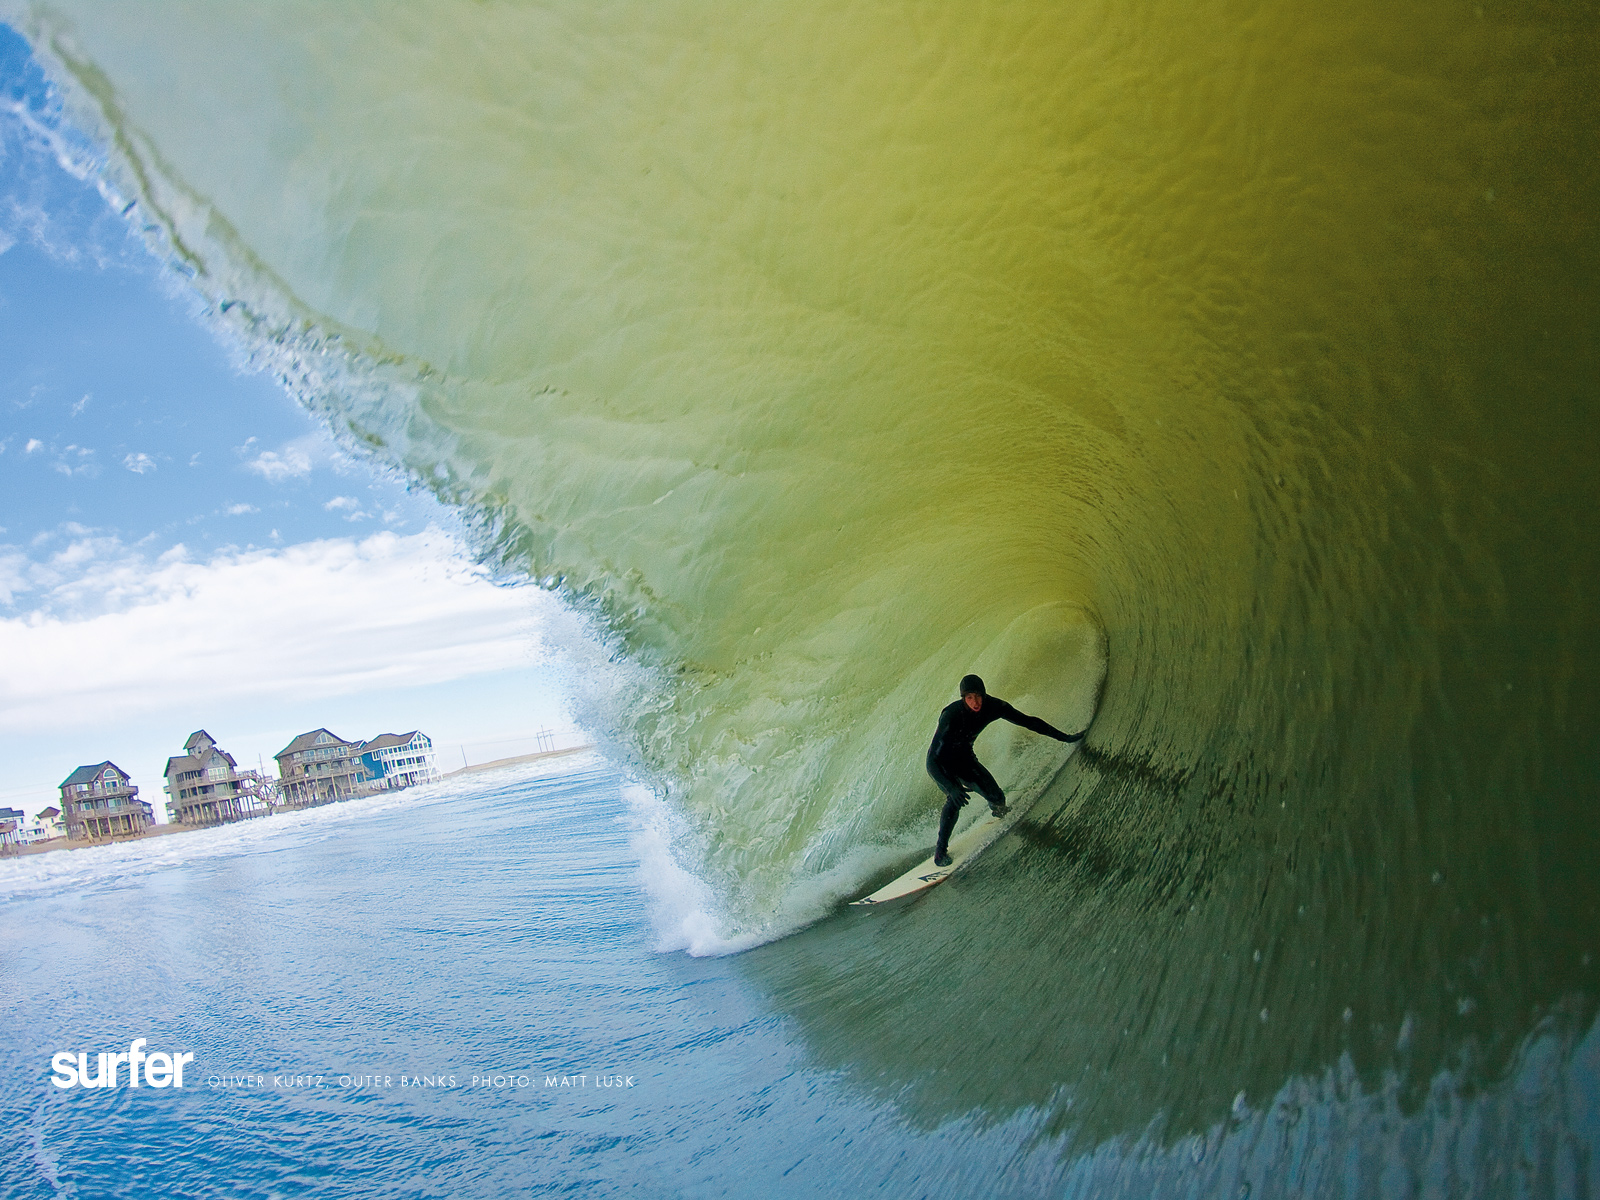 surfing wallpaper 3 surfing wallpaper 4 surfing wallpaper 5 surfing 1600x1200